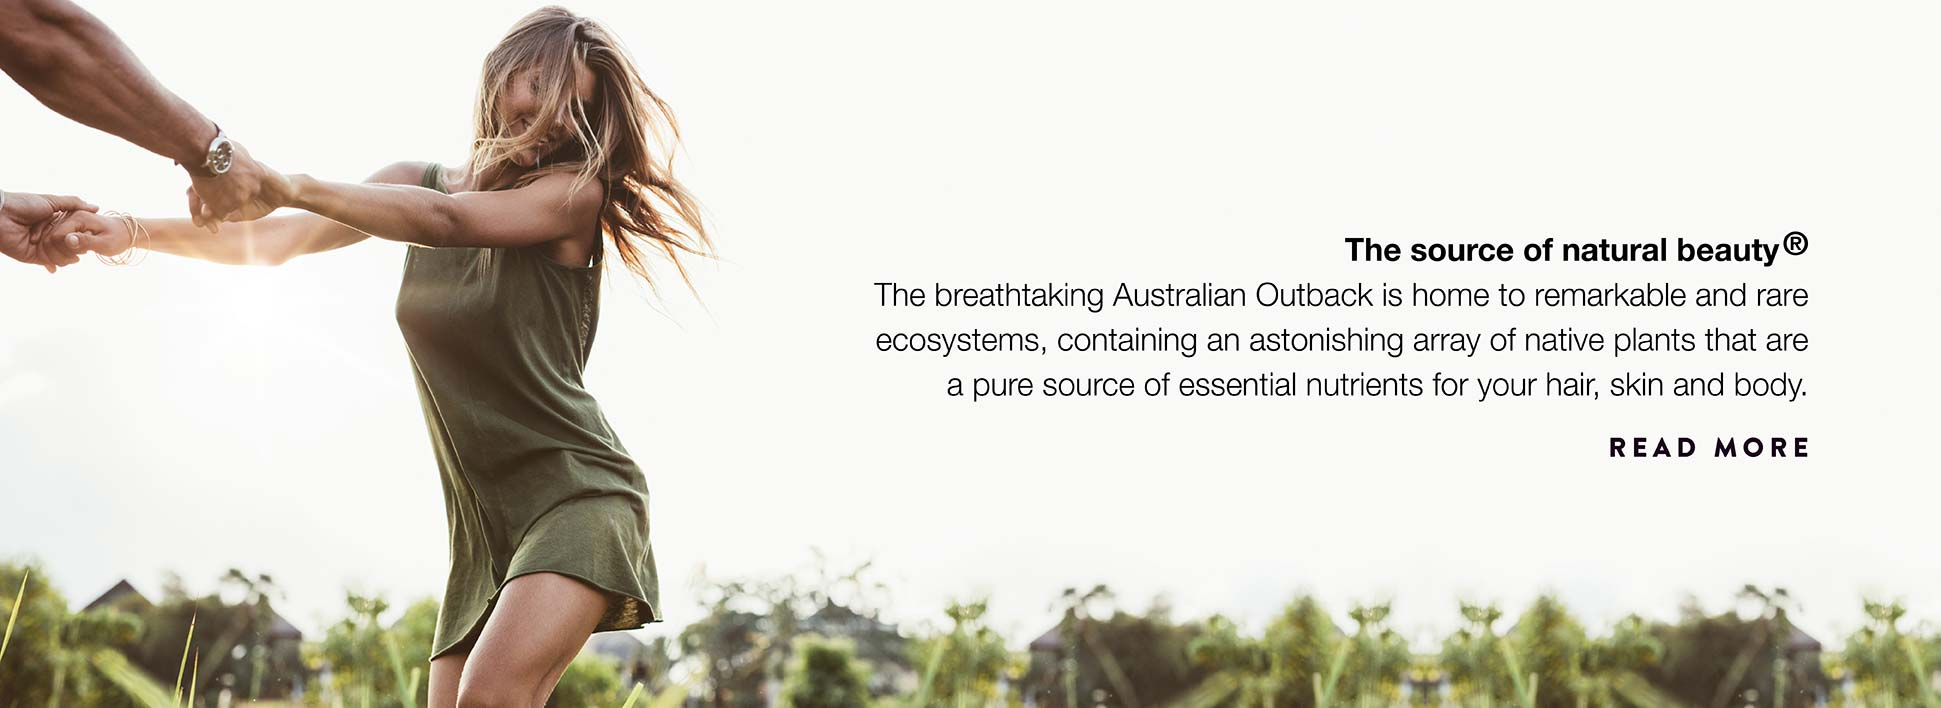 The breathtaking Australian Outback is home to essential nutrients for your hair, skin and body.